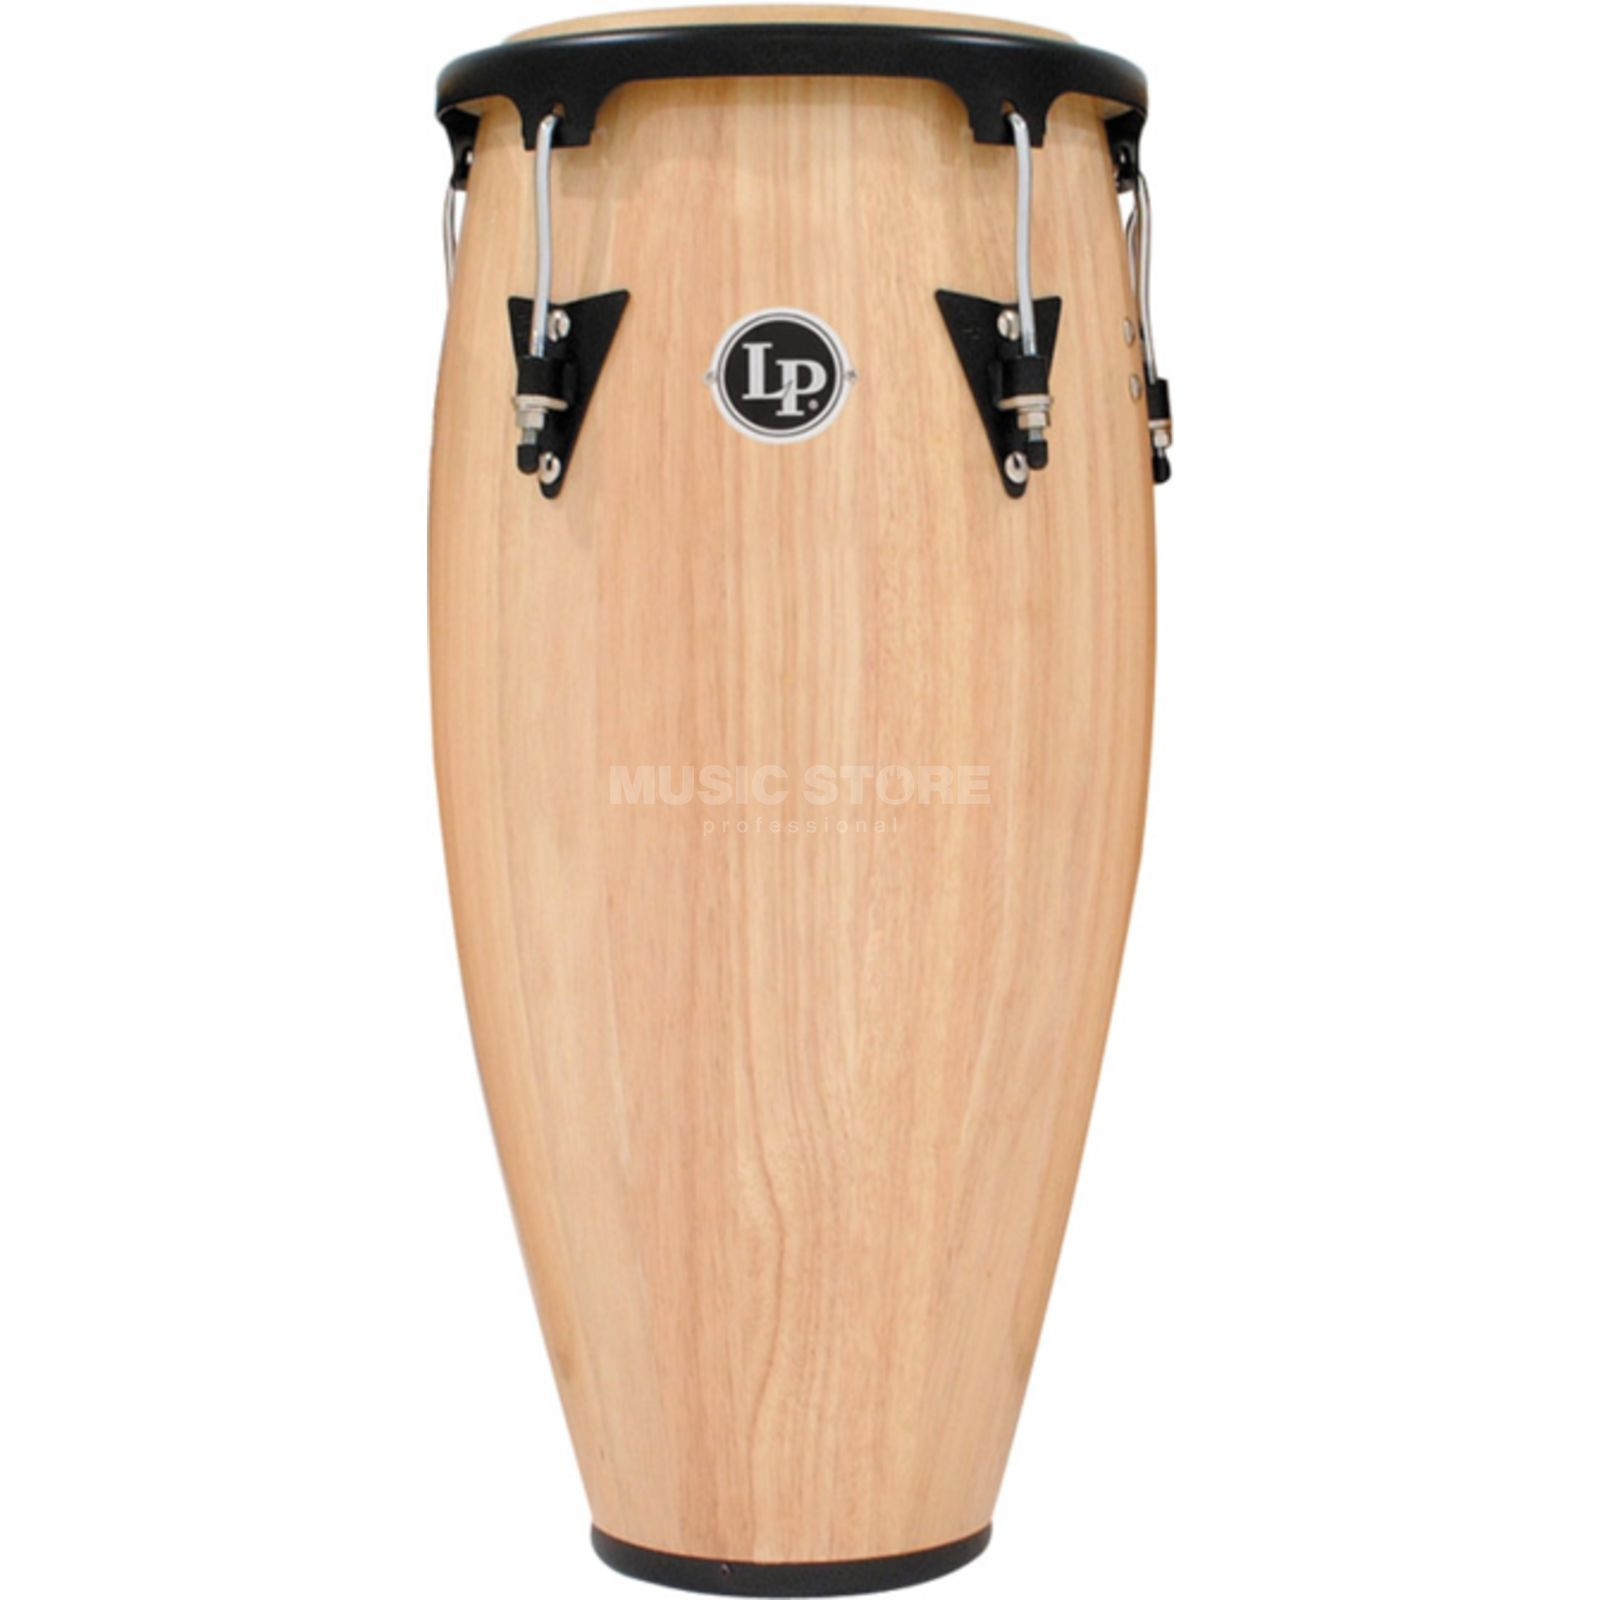 "Latin Percussion Aspire Conga LPA612-AW, 12"" Tumba, Natural Wood #AW Produktbillede"